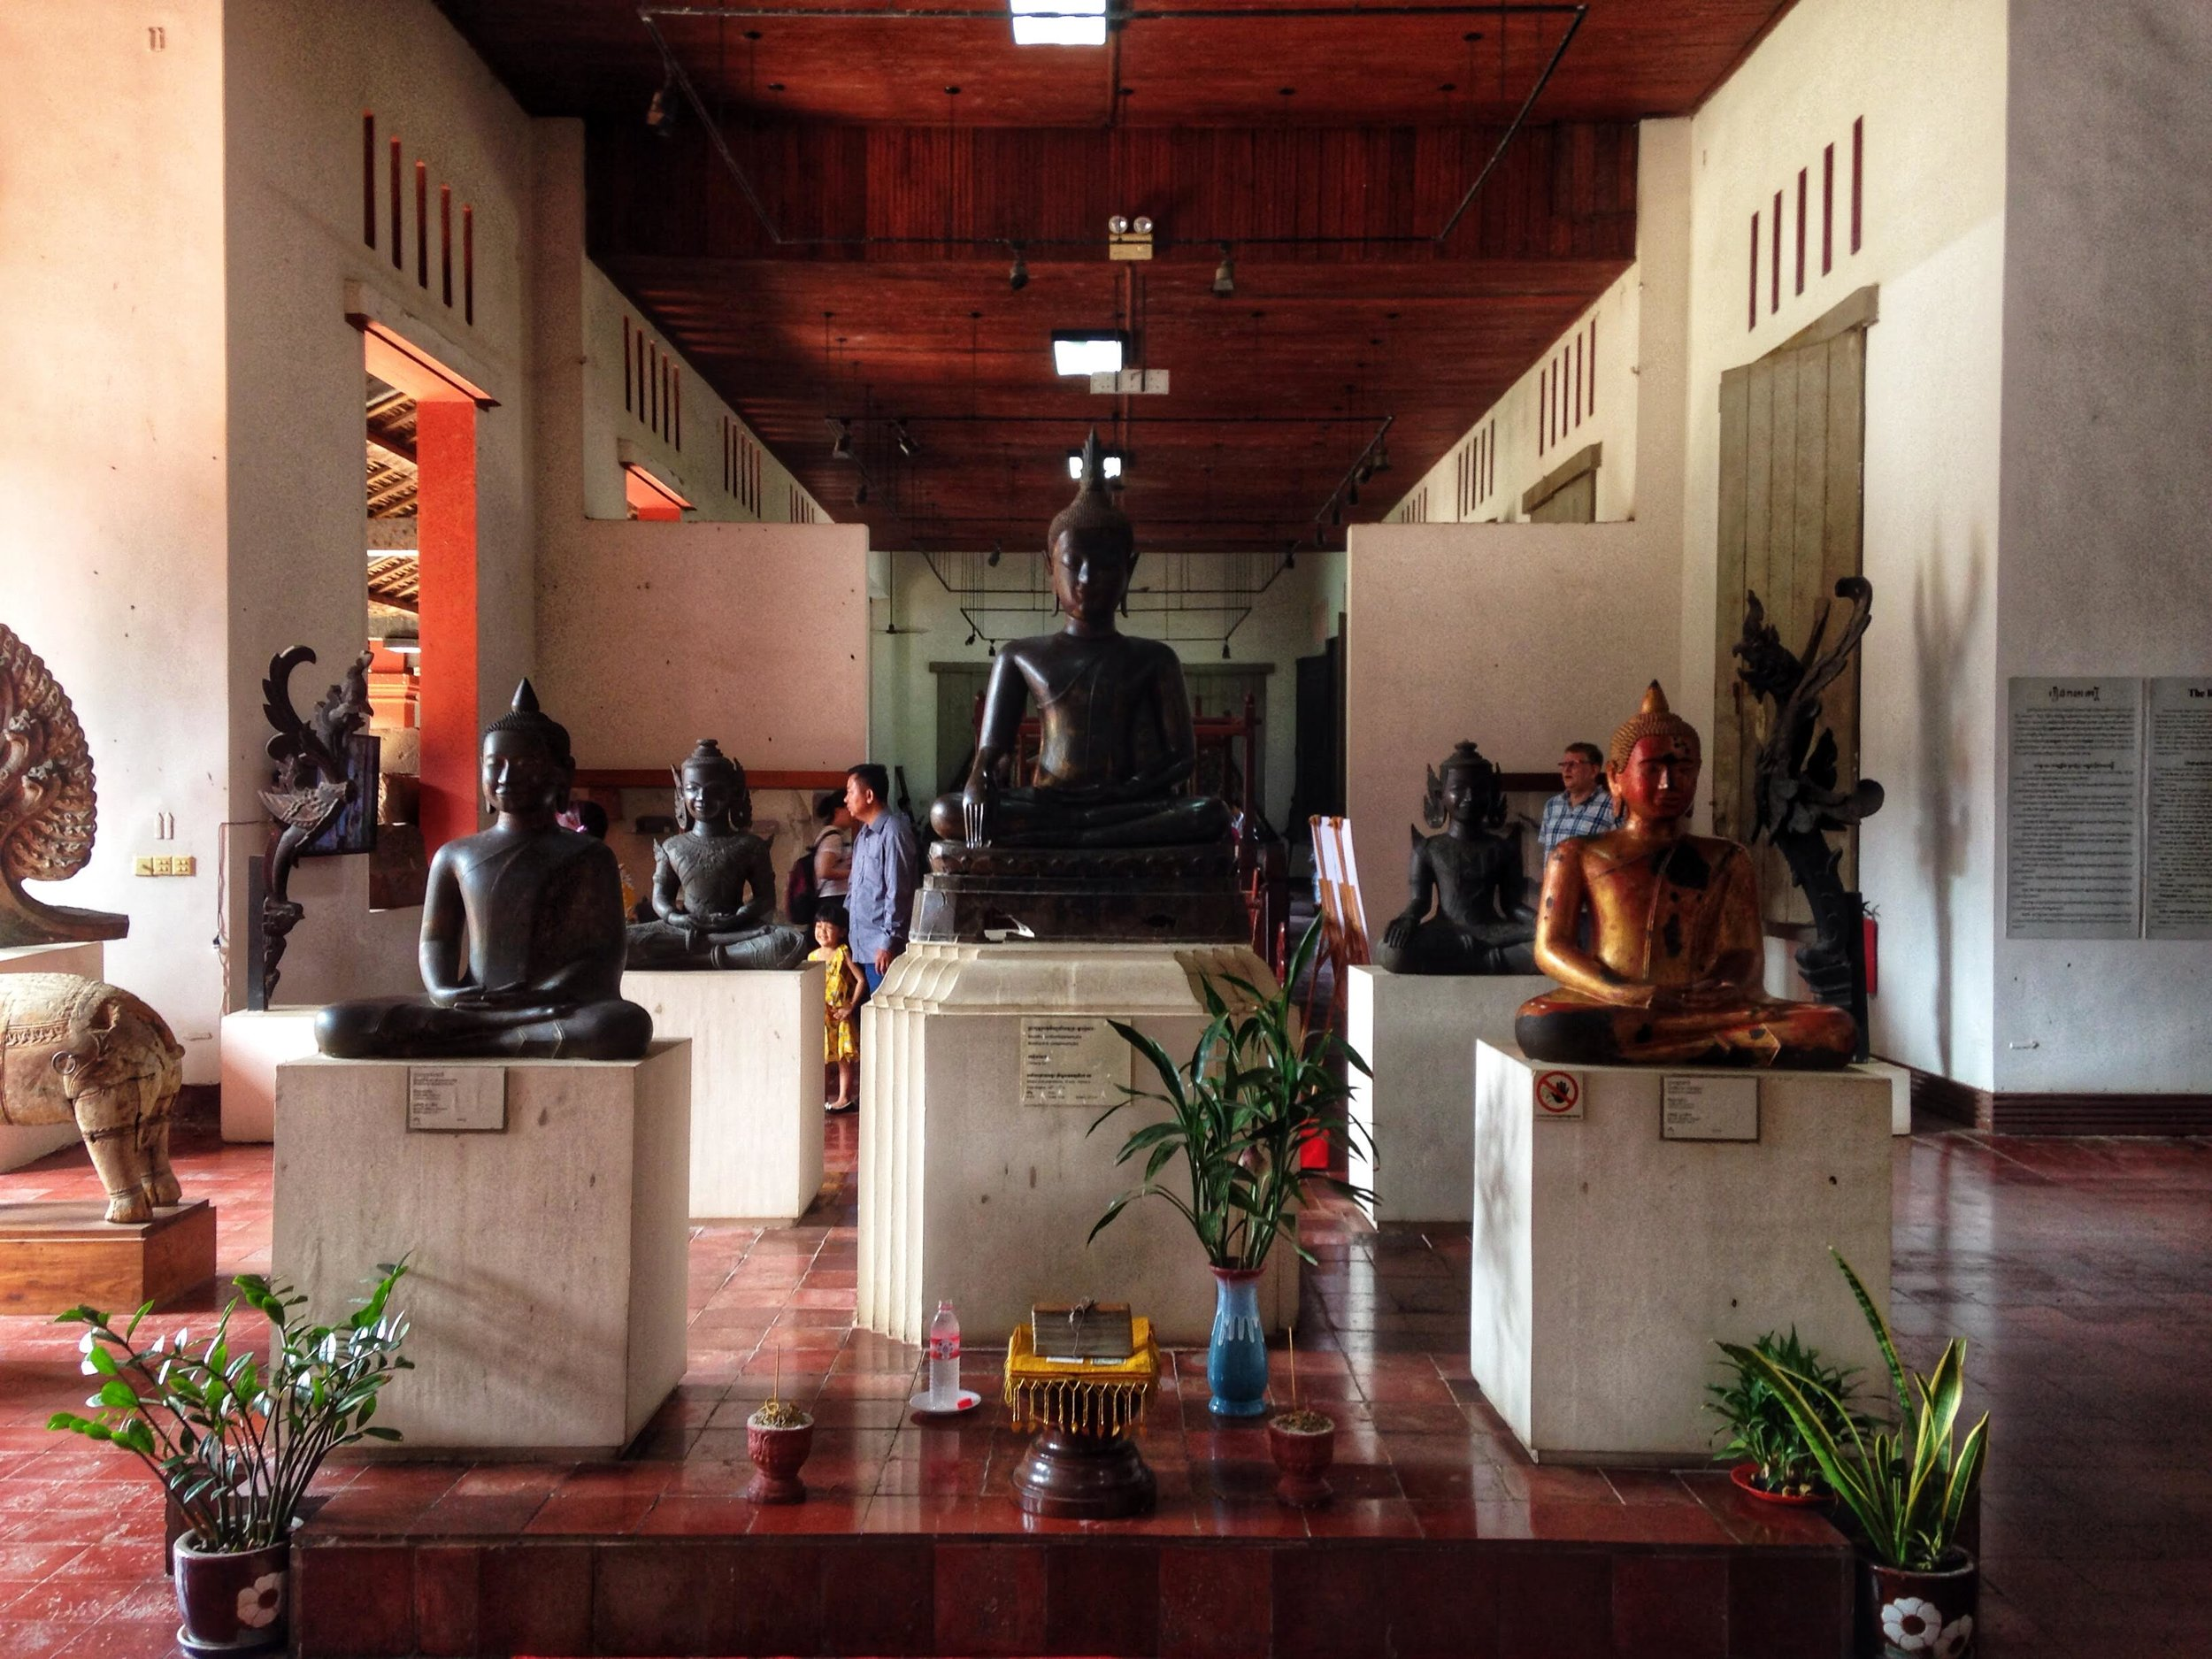 A Buddhist shrine inside one of the rooms at the National Museum.